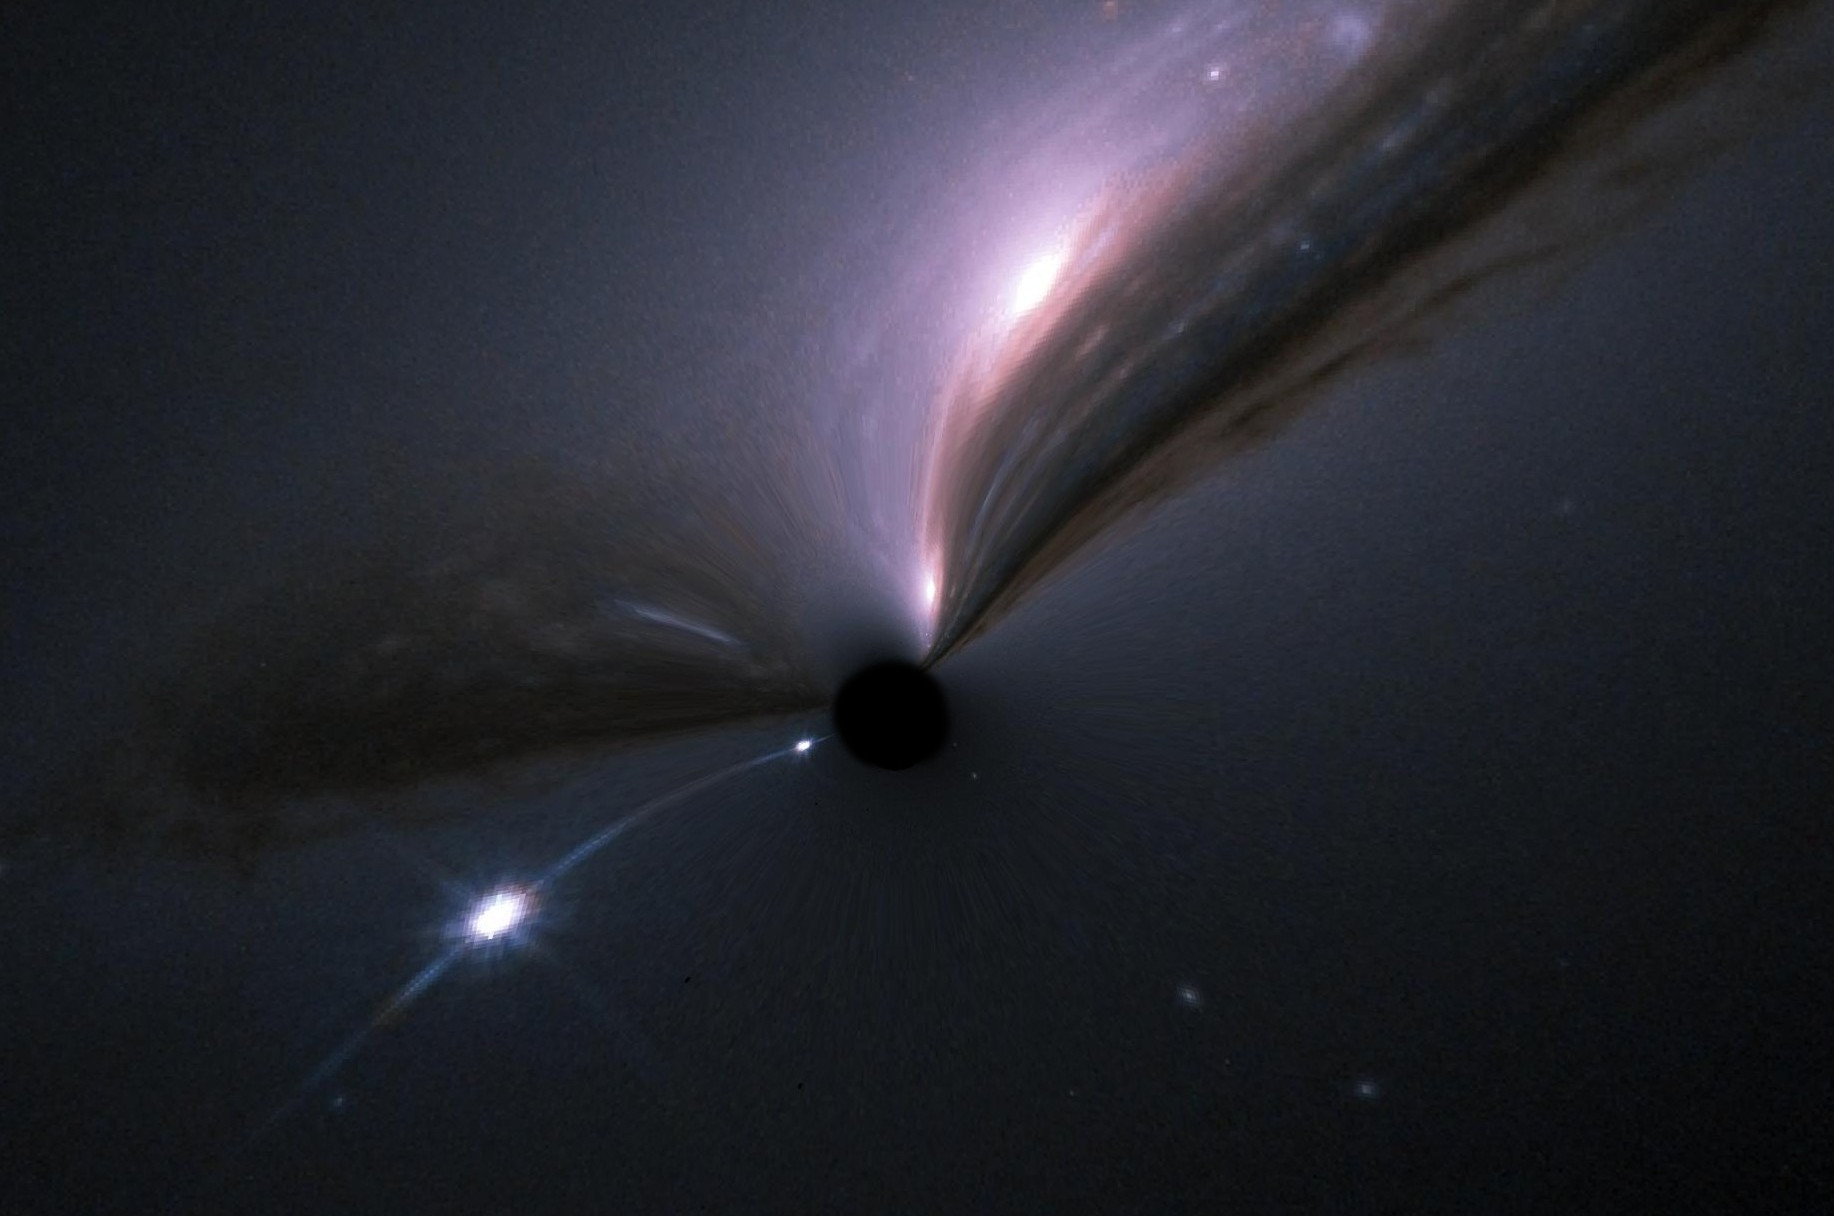 A supernovae as it would be lensed by a black hole